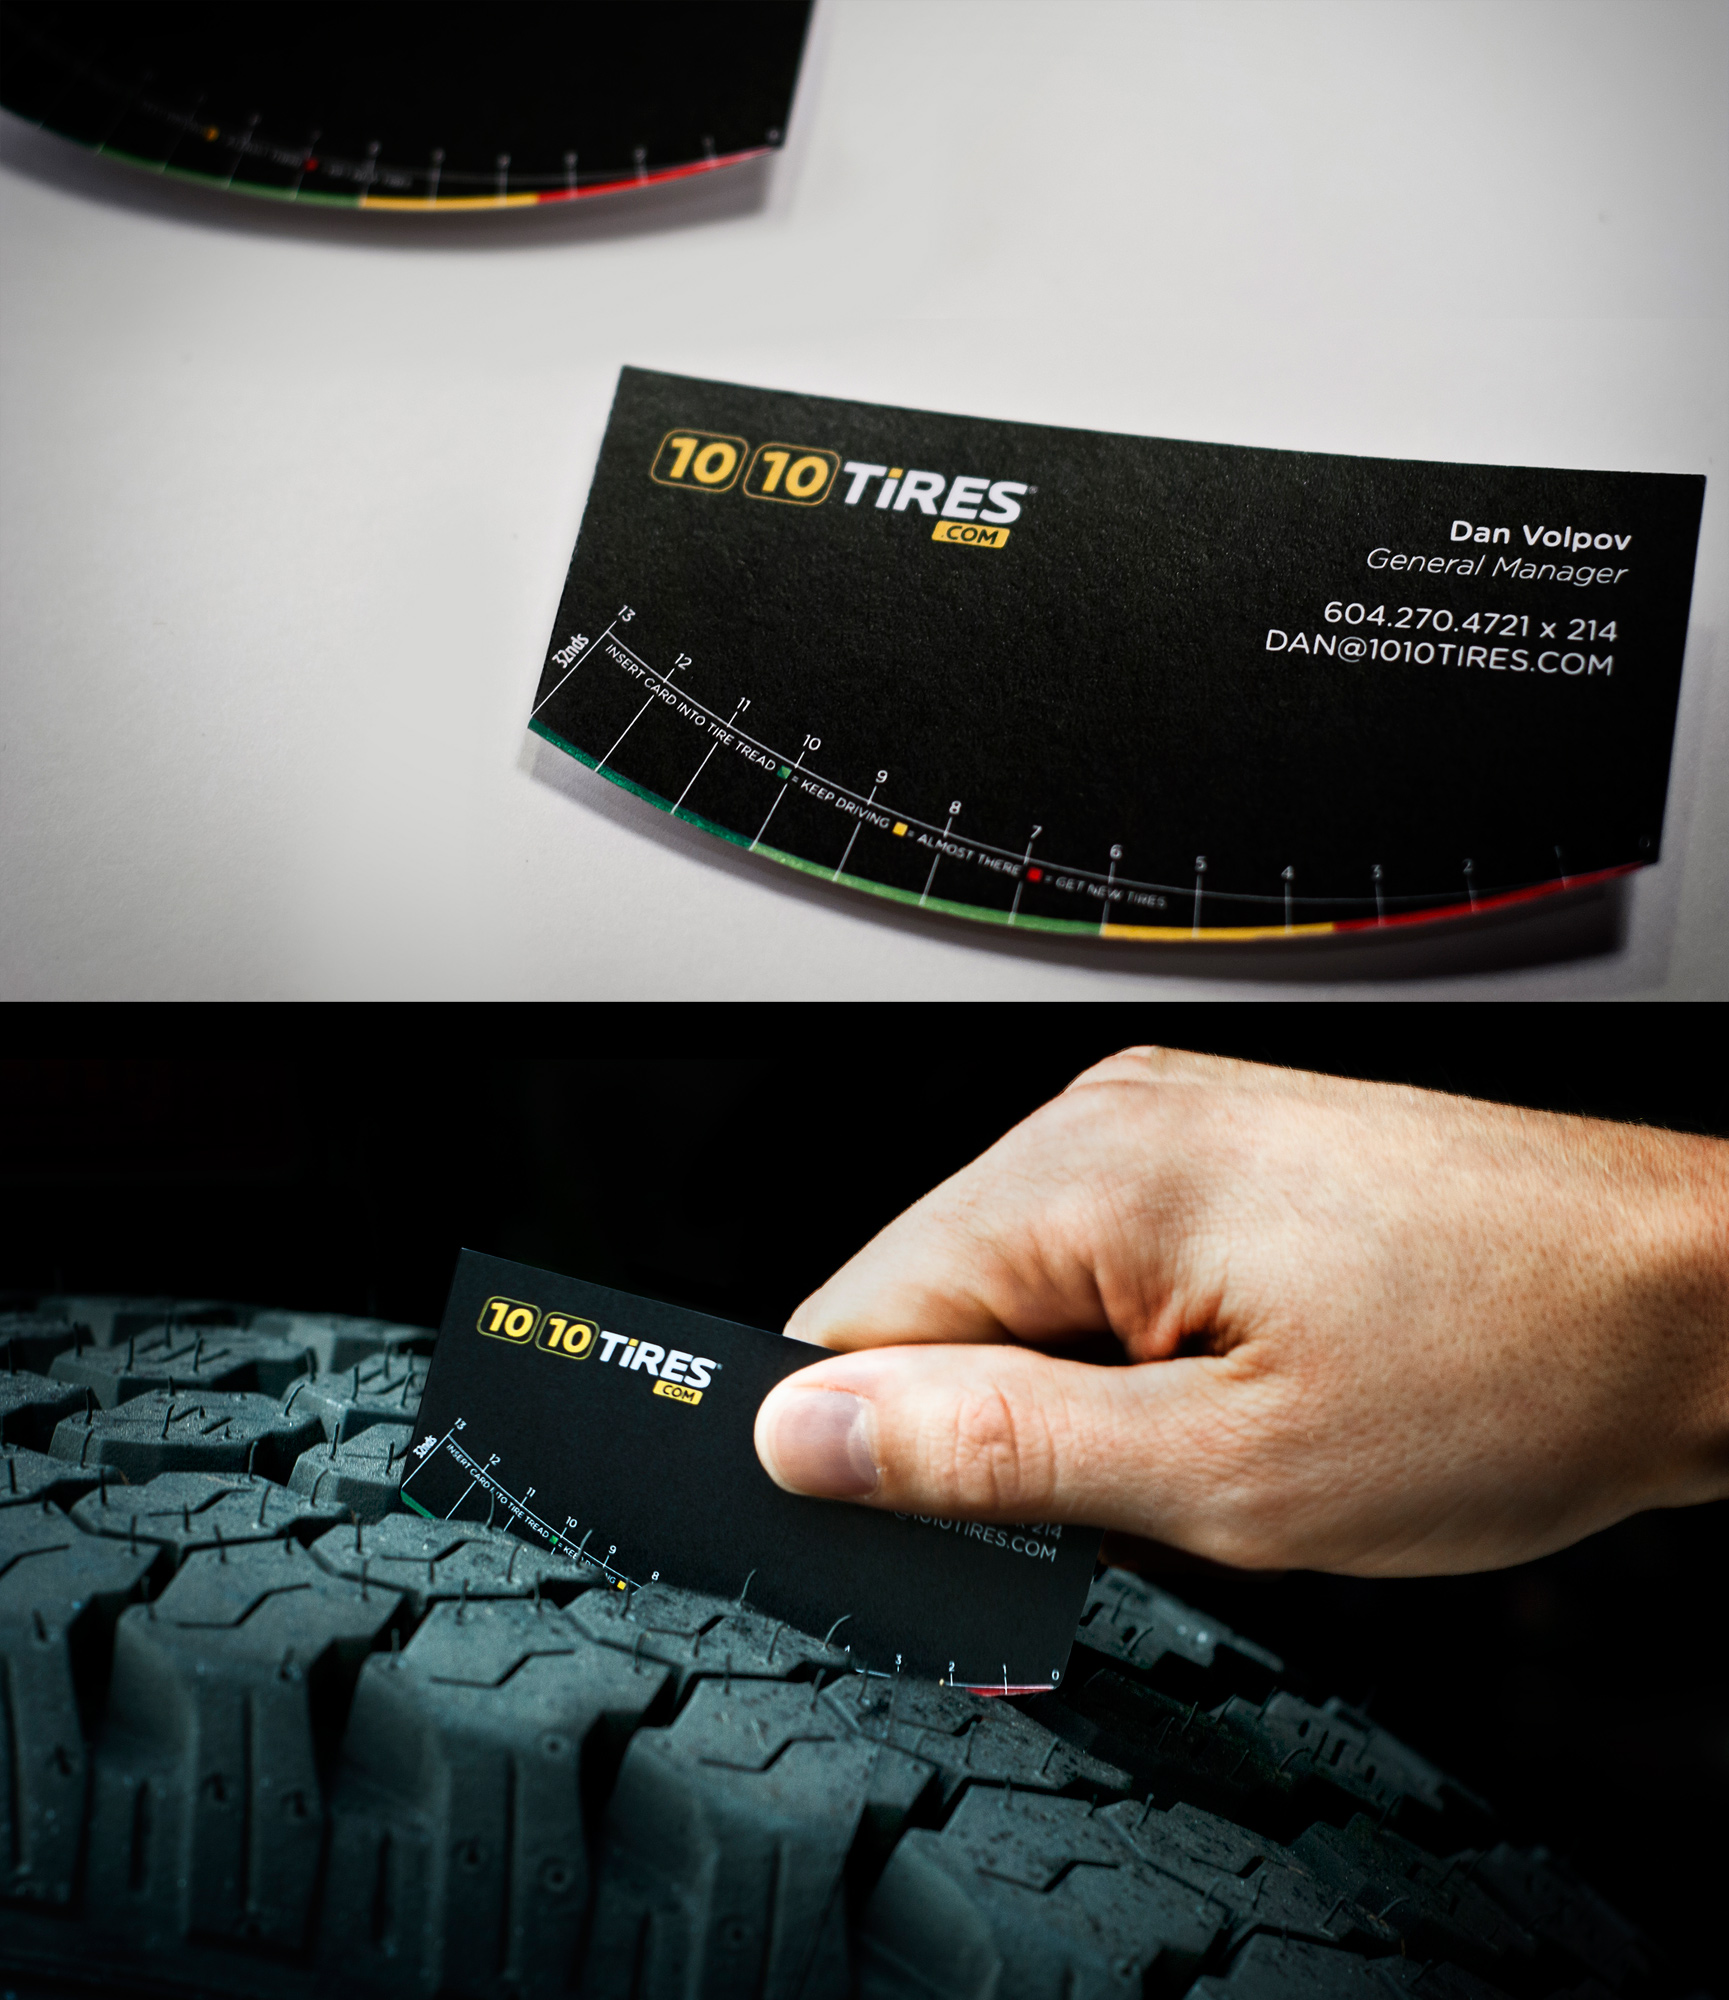 1010 Tires Direct Advert By Spring: Tire tread business card   Ads ...